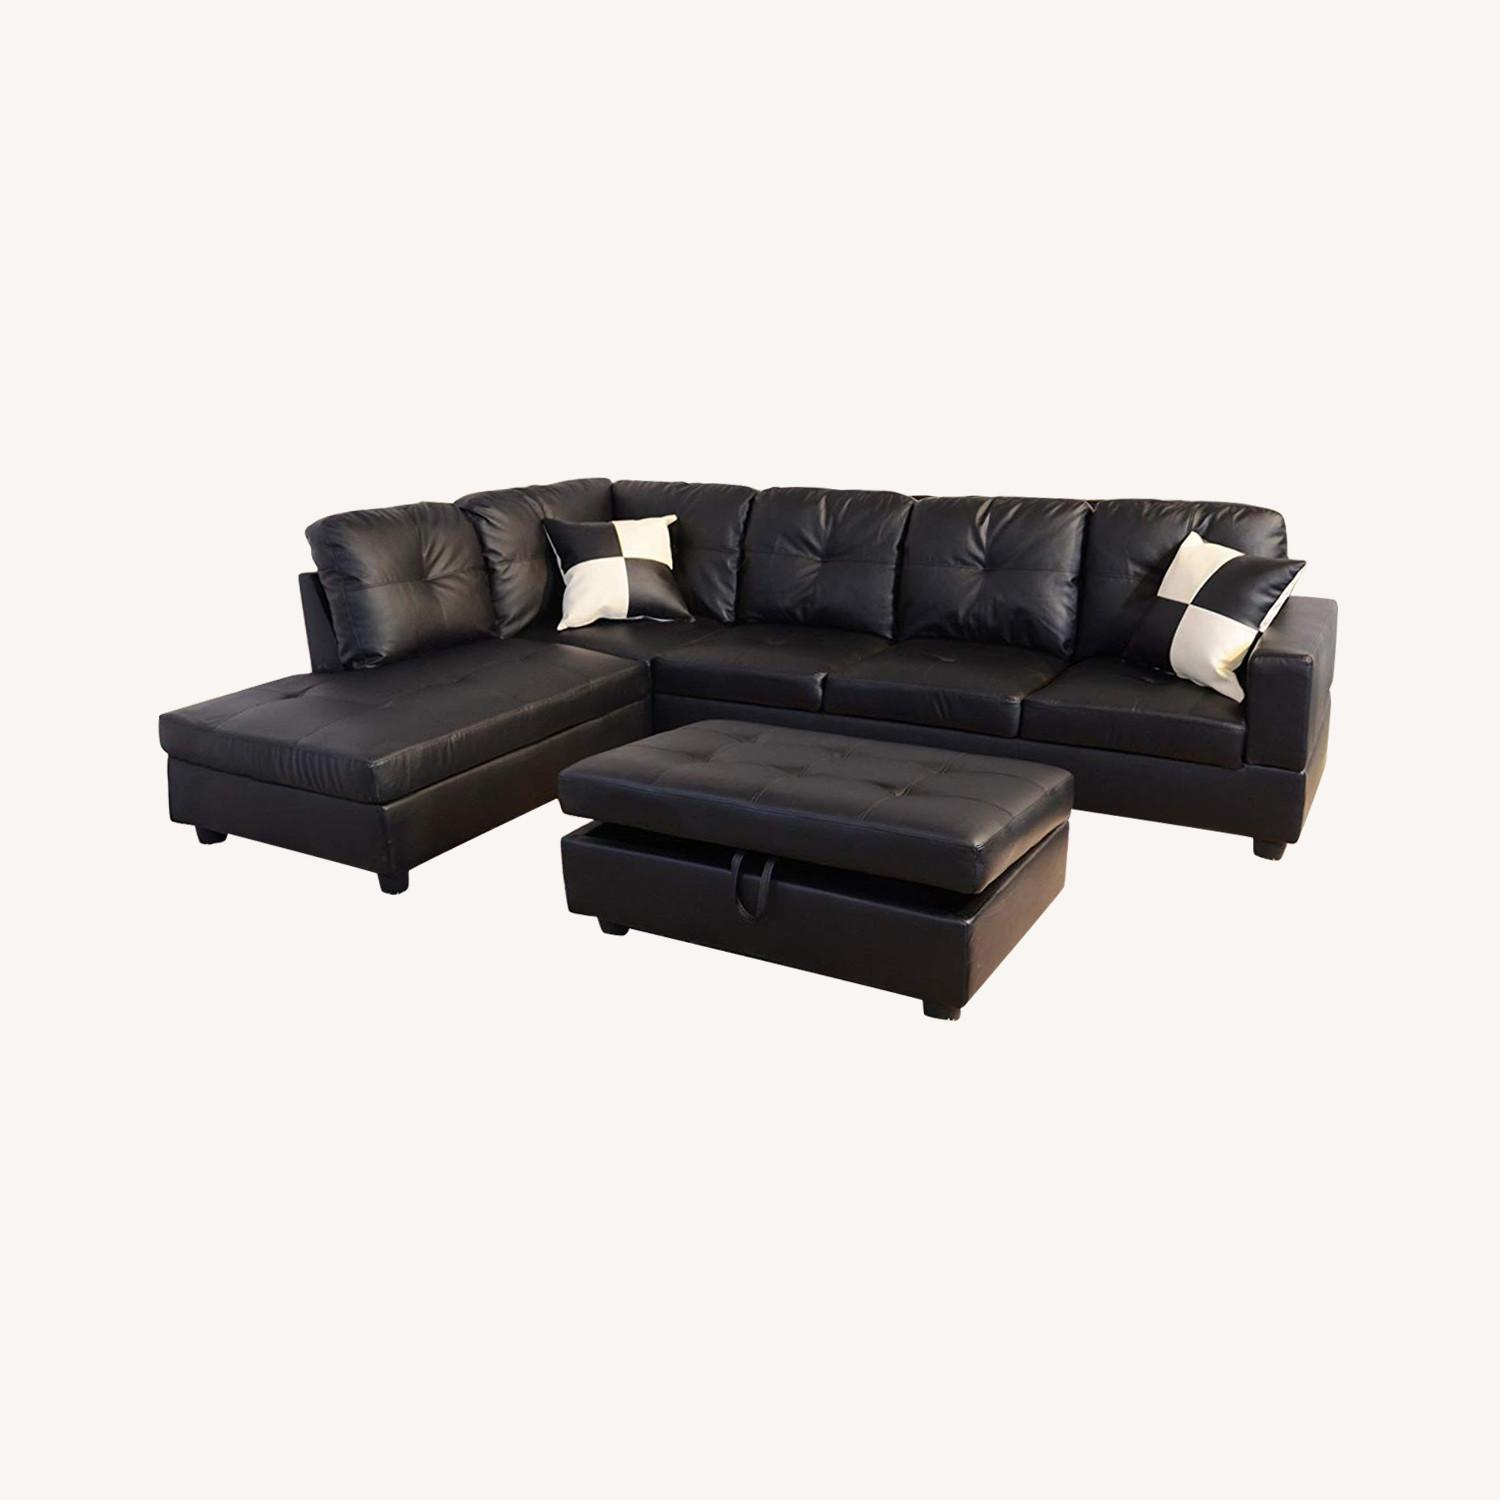 Lifestyle Black Leather 3 Piece Sectional Sofa & Ottoman